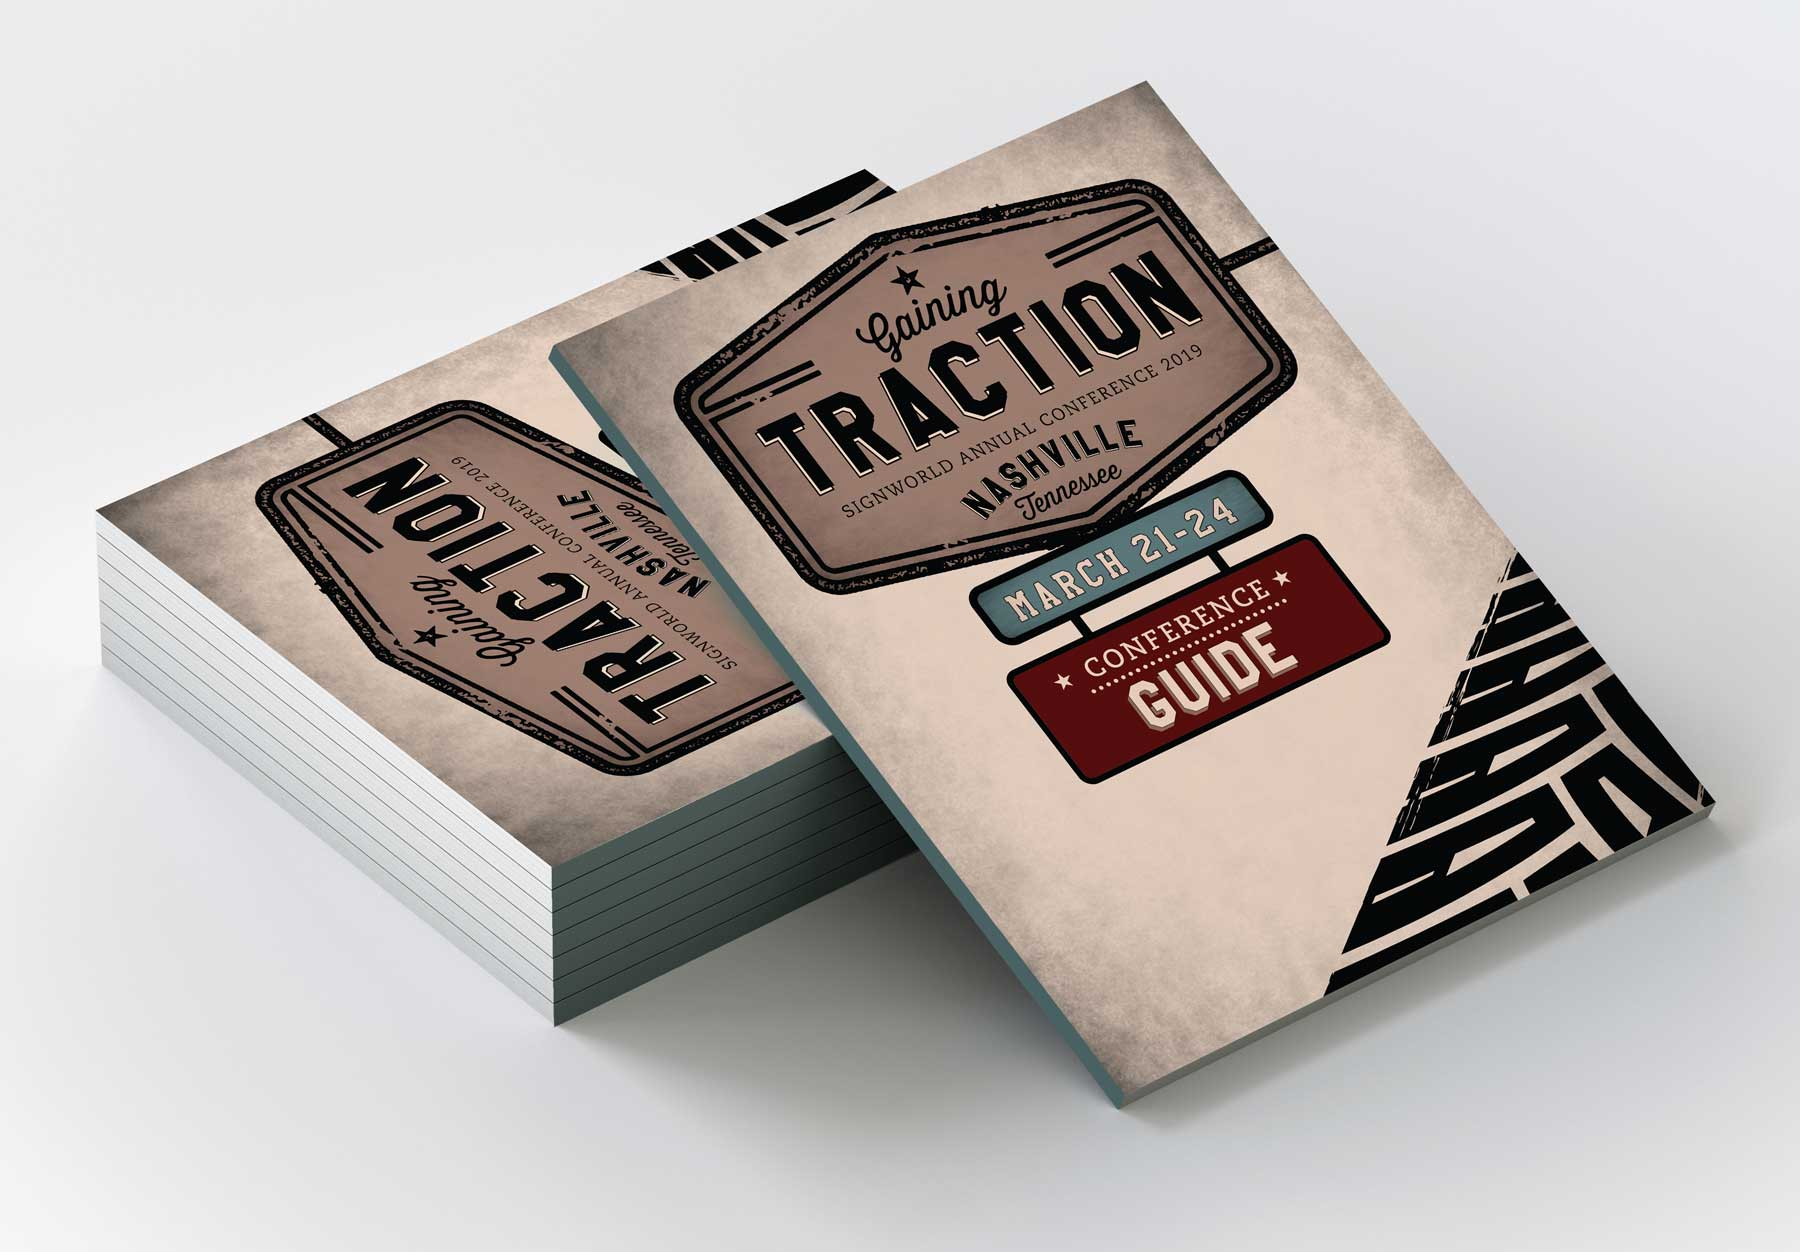 Traction-Conference-Guide.jpg